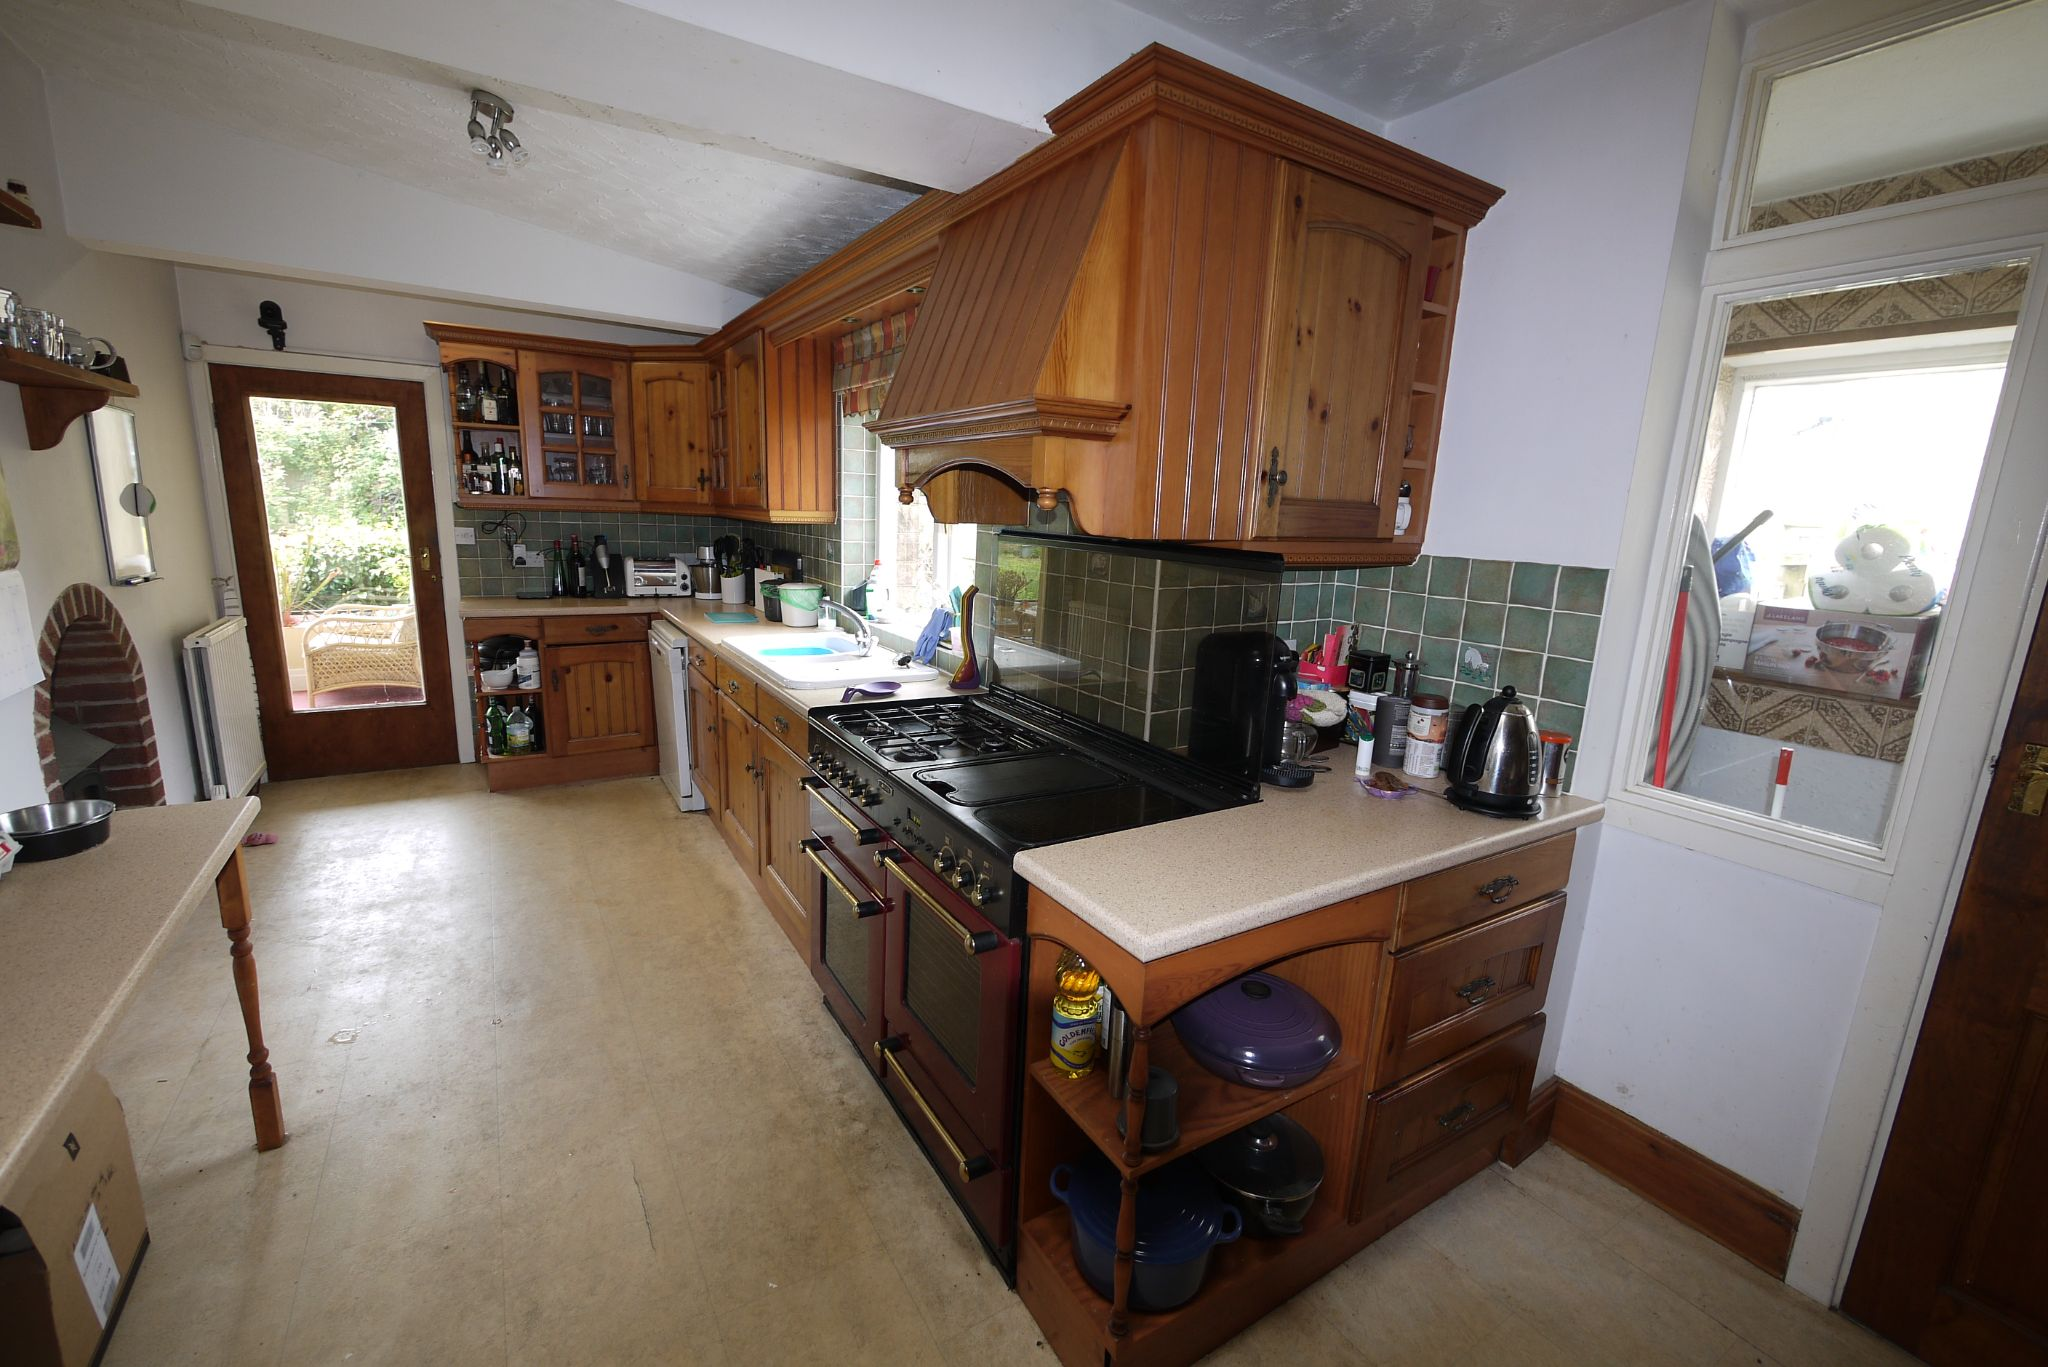 4 bedroom detached house SSTC in Brighouse - Photograph 11.